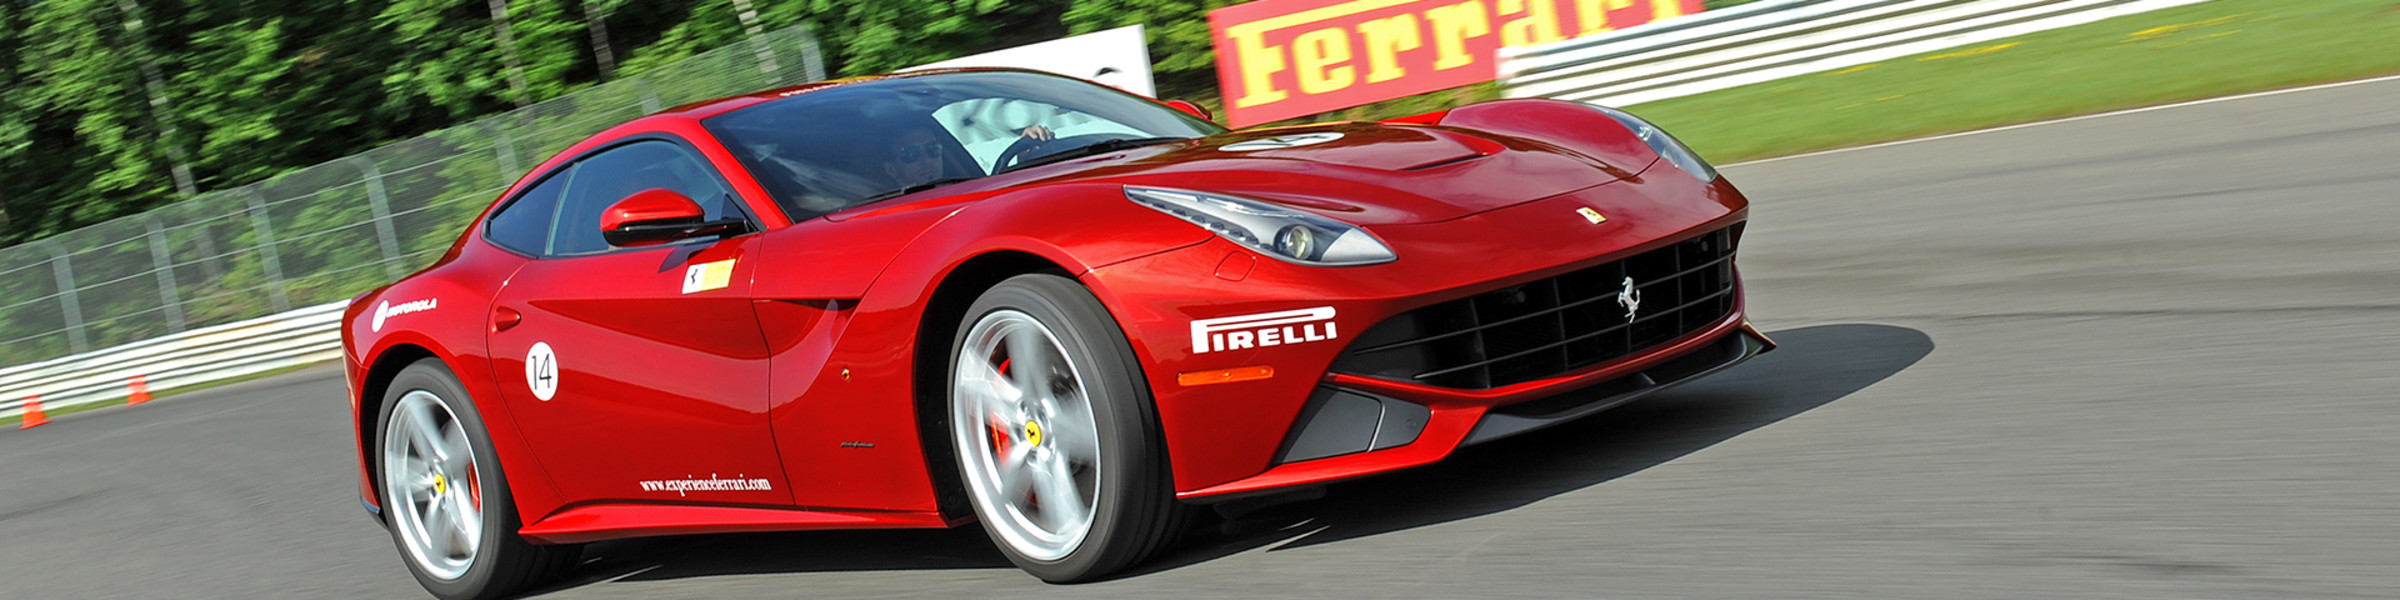 in school classes ferrari lessons ny learn rite manhattan flushing nyc queens and defensive auto driving home